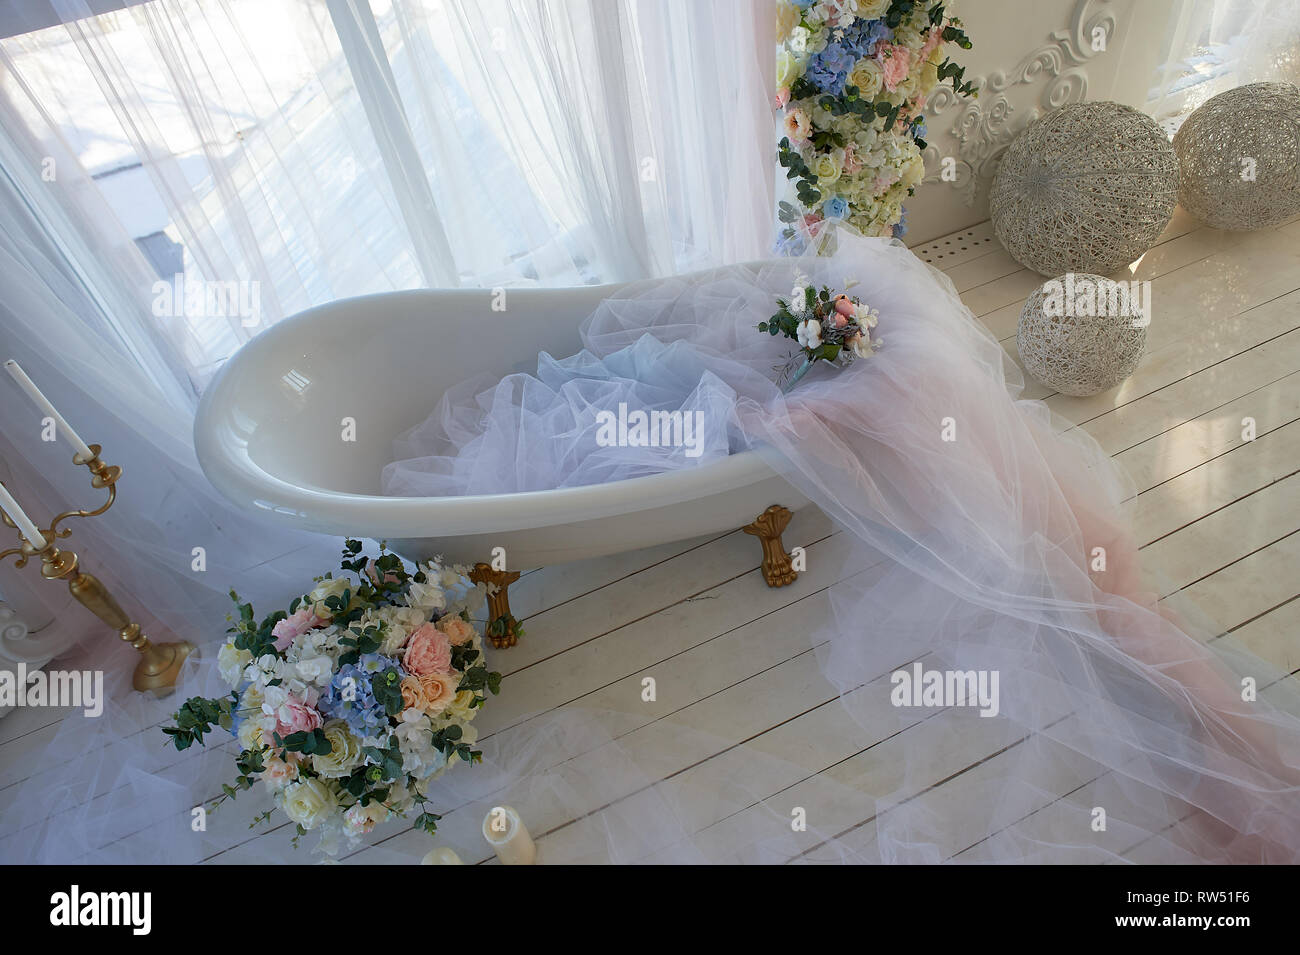 Bath on lion's Golden paws.The atmosphere of romance and love. Light interior, chiffon, flowers. The view from the top - Stock Image